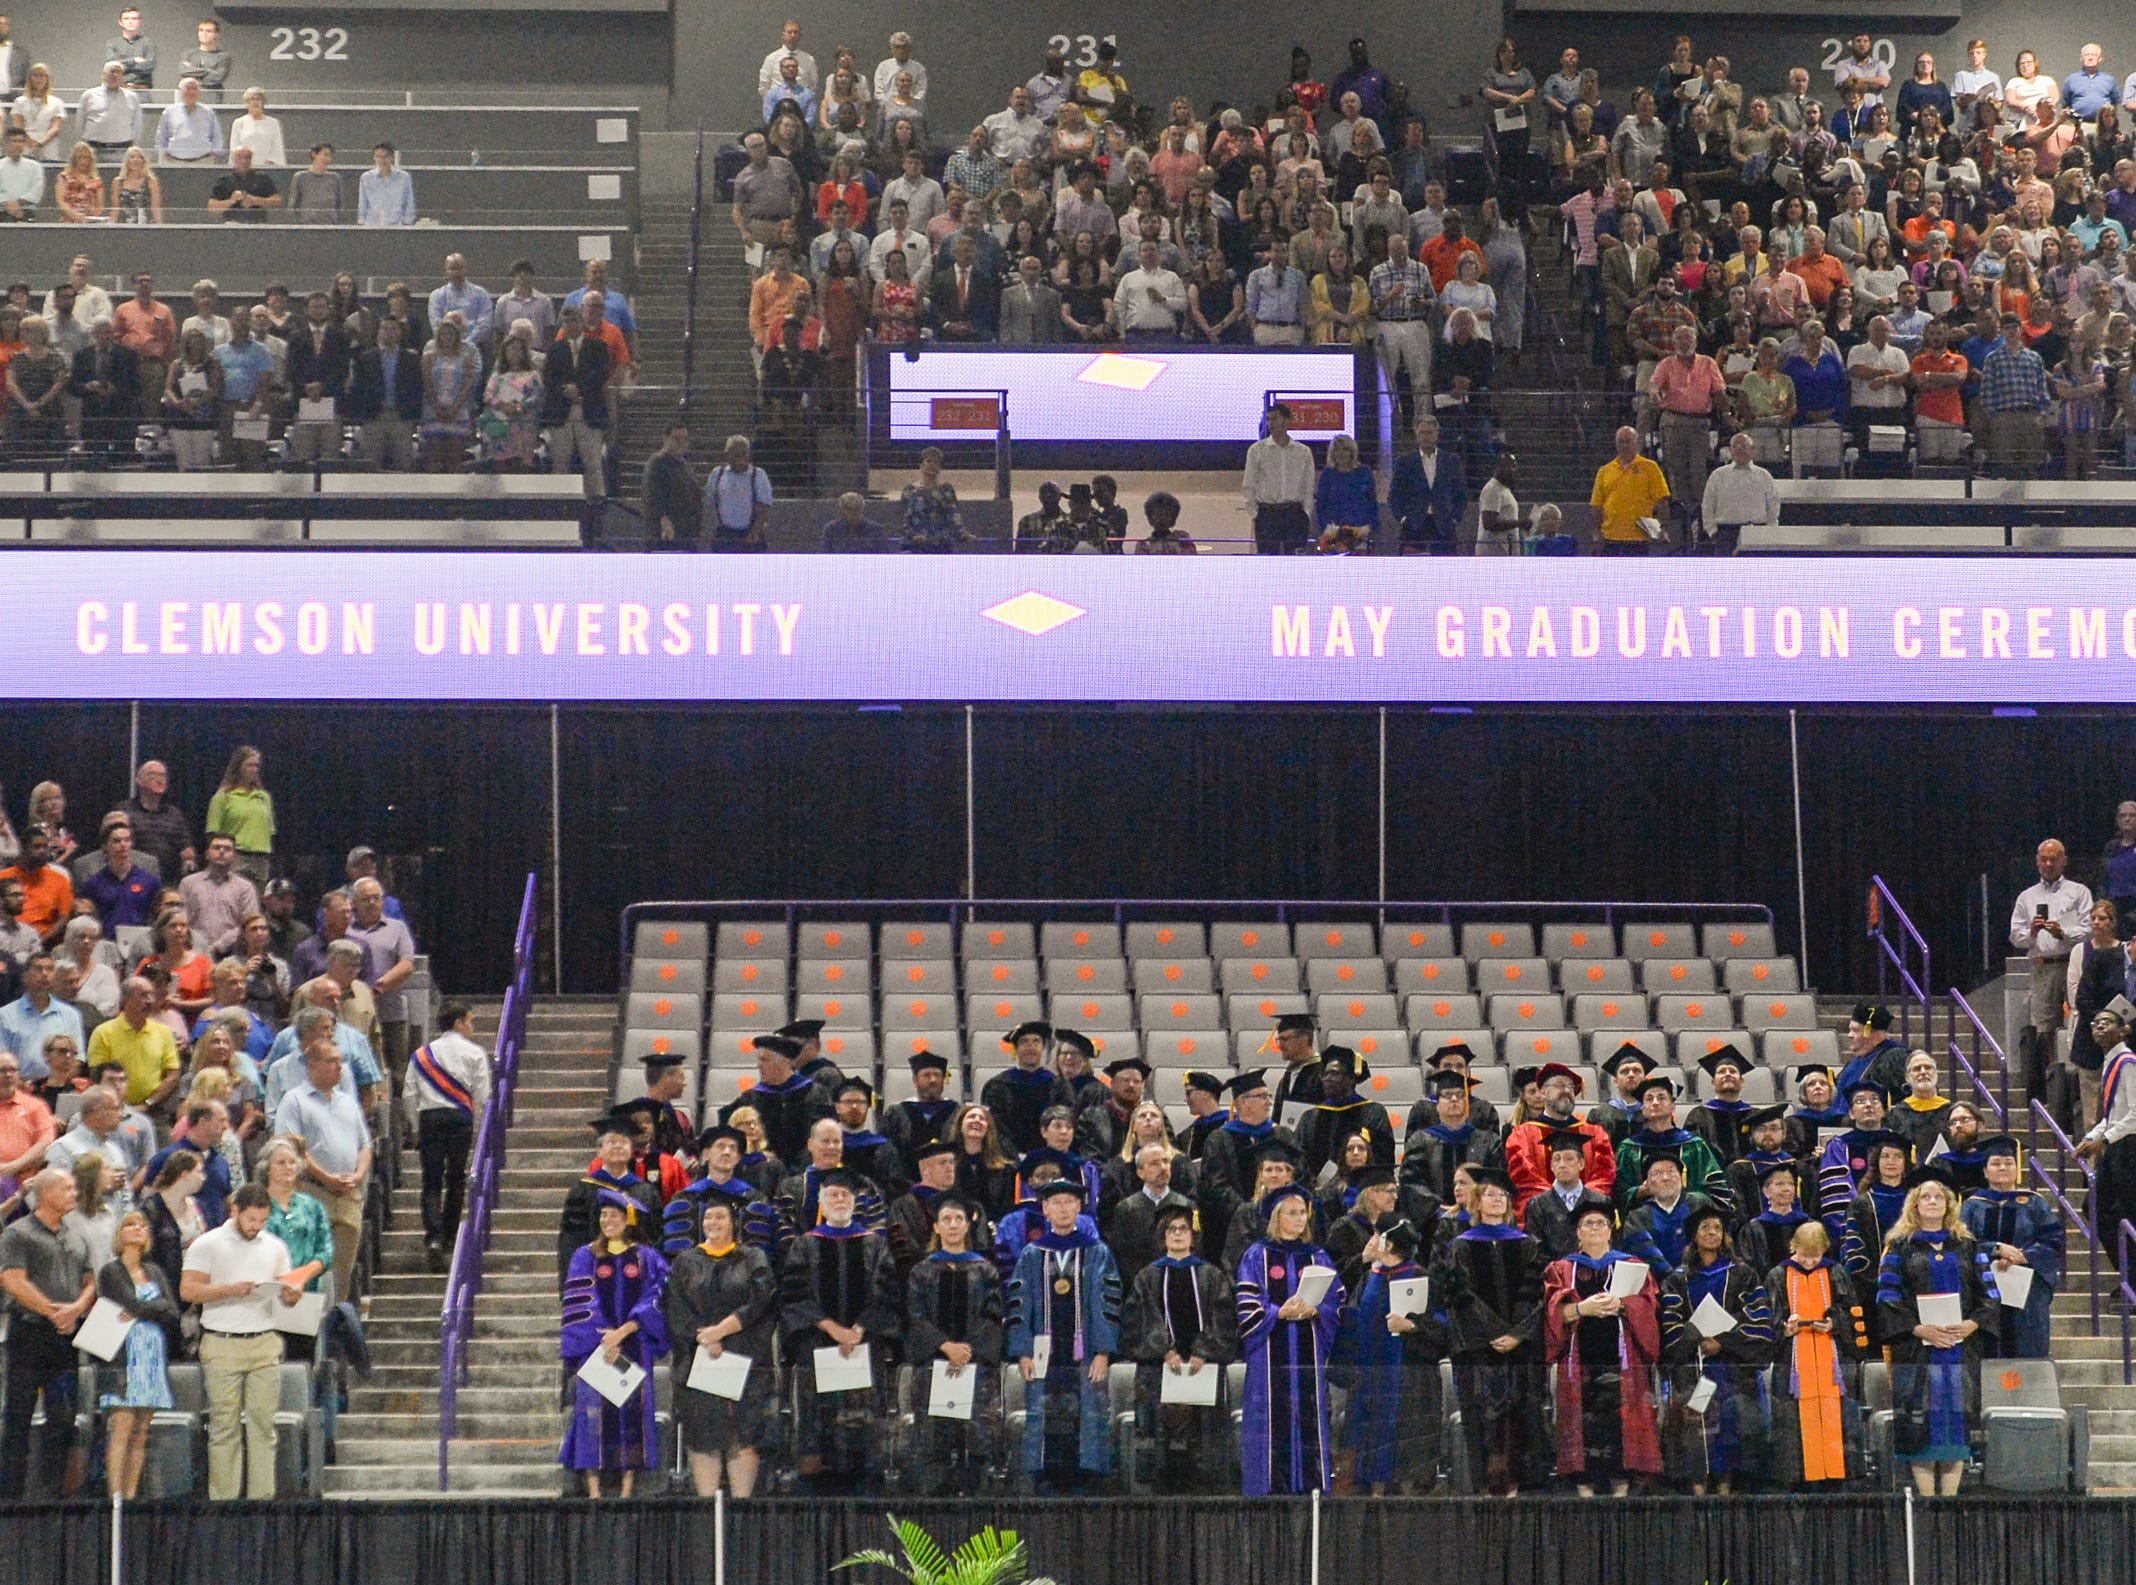 Faculty get seated before Clemson University commencement ceremonies in Littlejohn Coliseum in Clemson Friday, May 10, 2019.